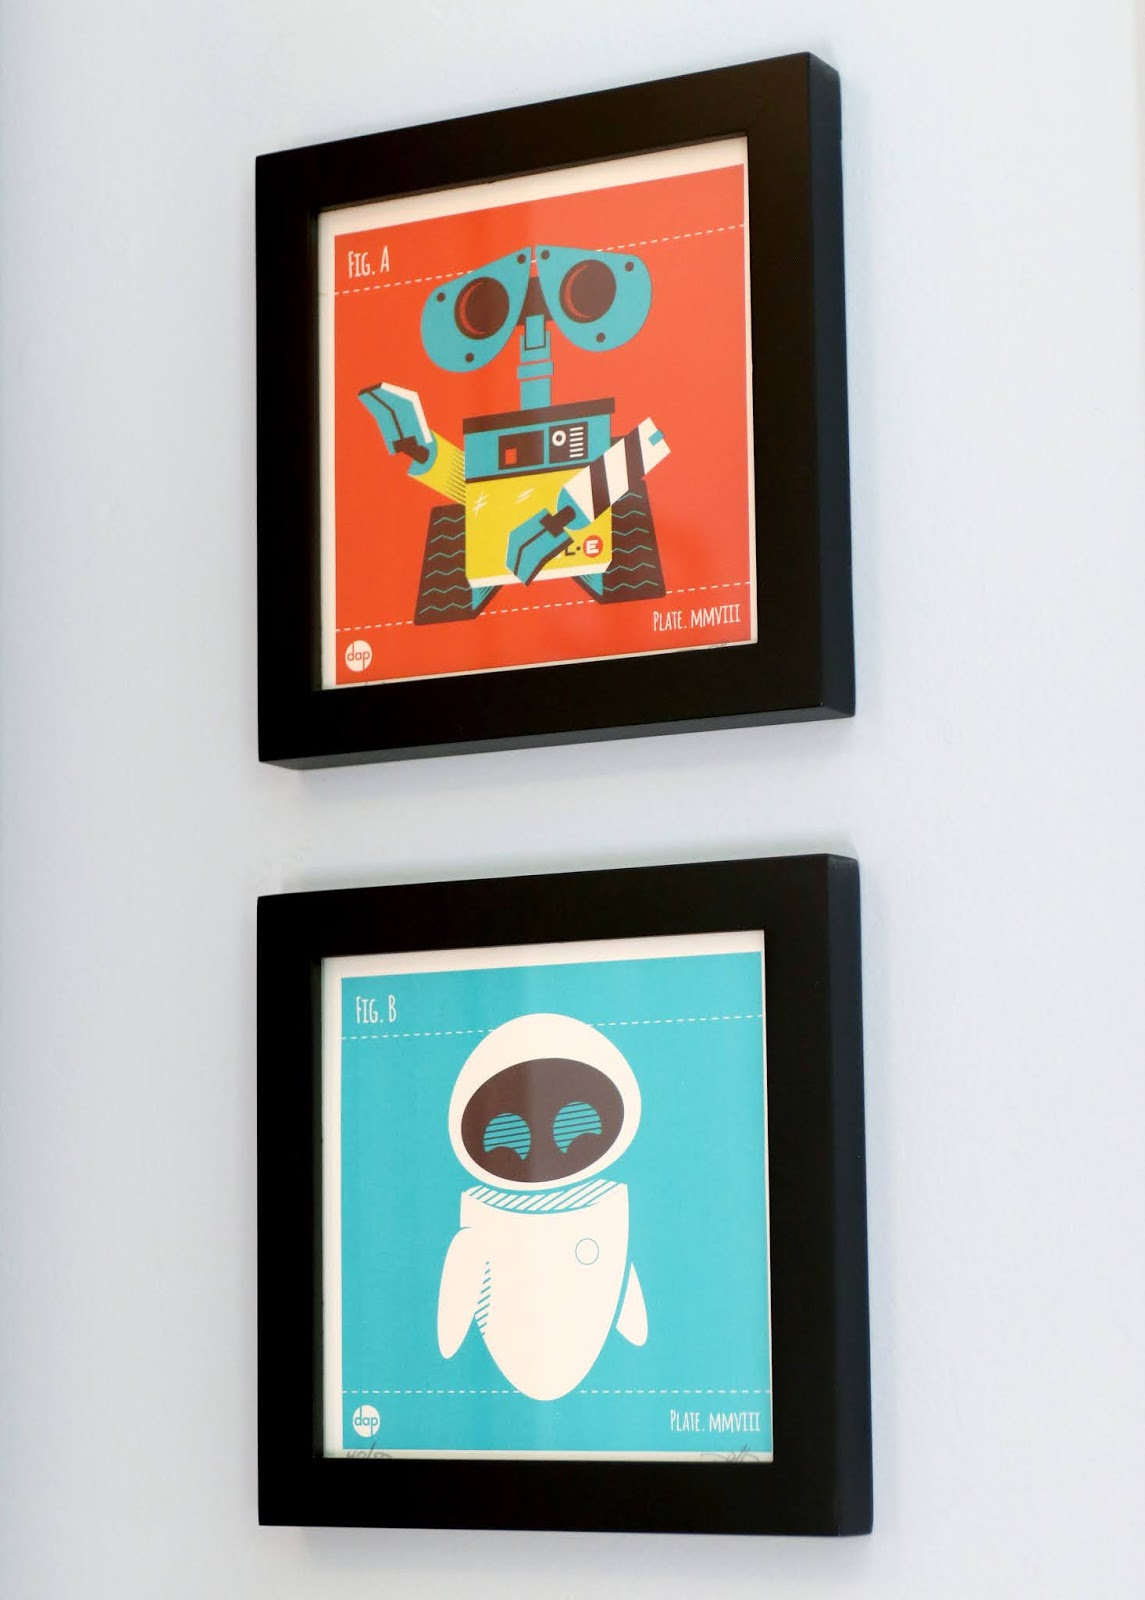 nycc new york comic con wall-e art prints dave perillo